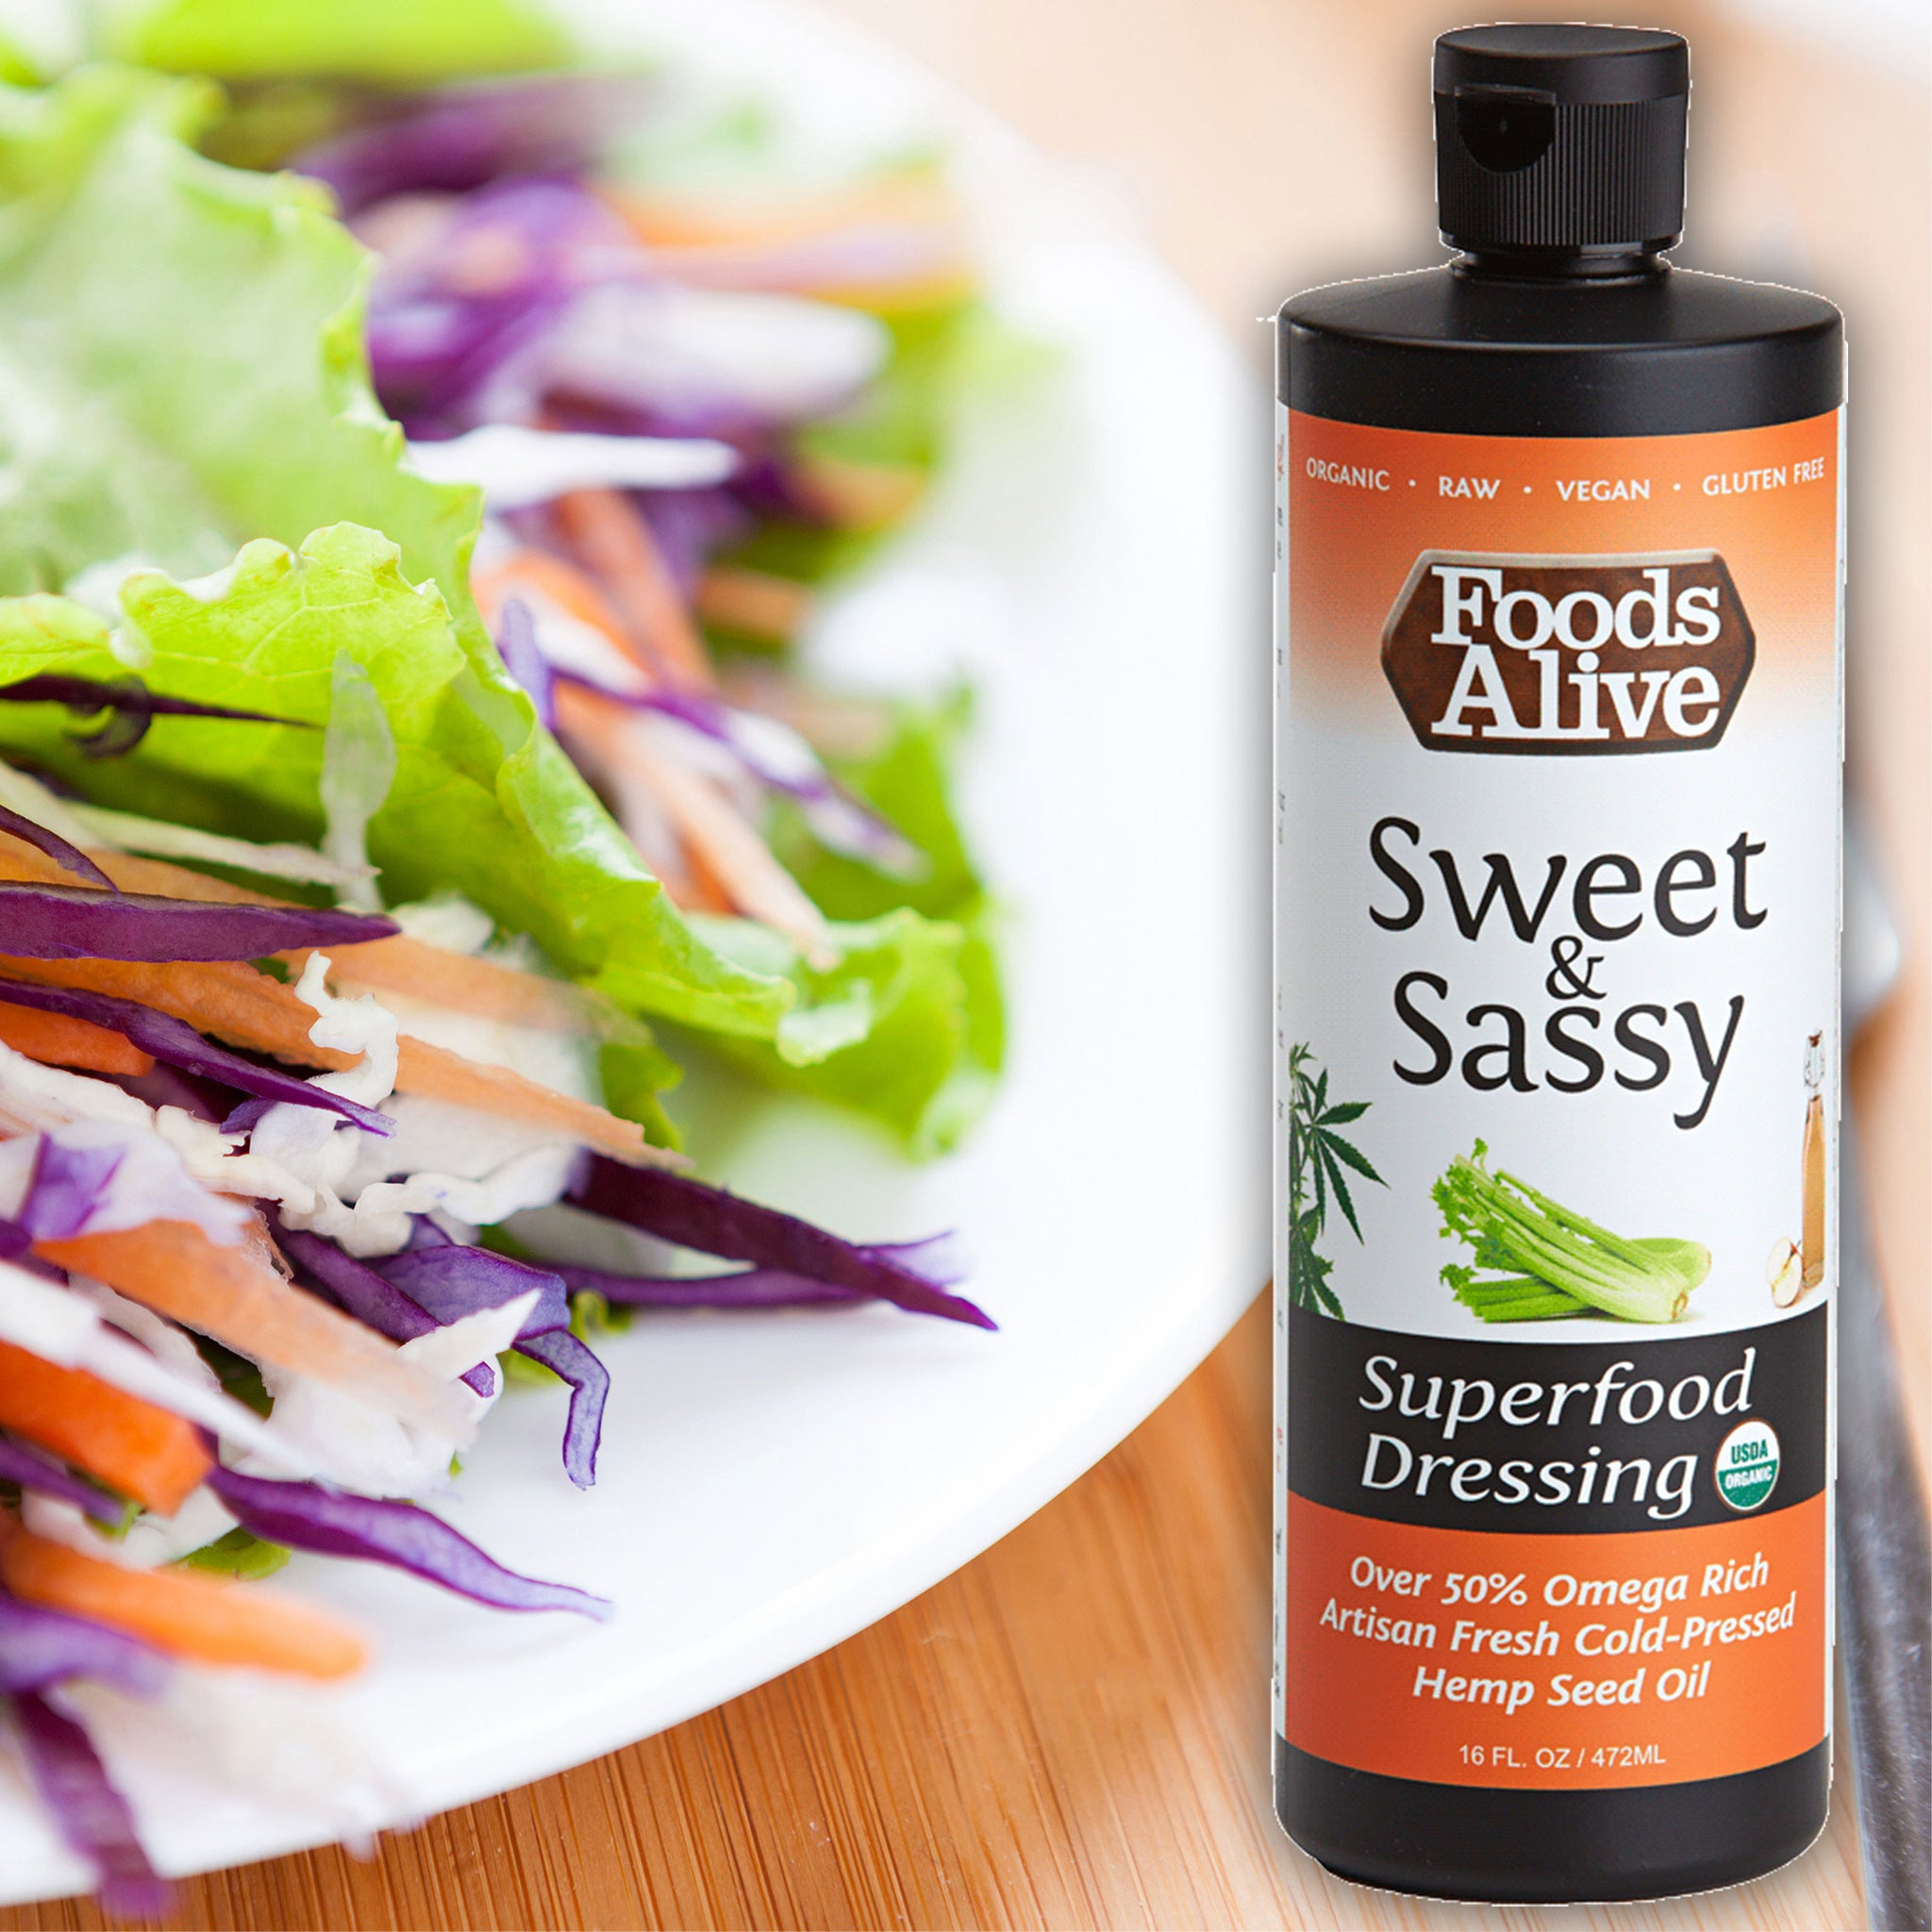 Foods Alive - Artisan Cold-Pressed Sweet and Sassy Organic Hemp Oil Superfood Dressing